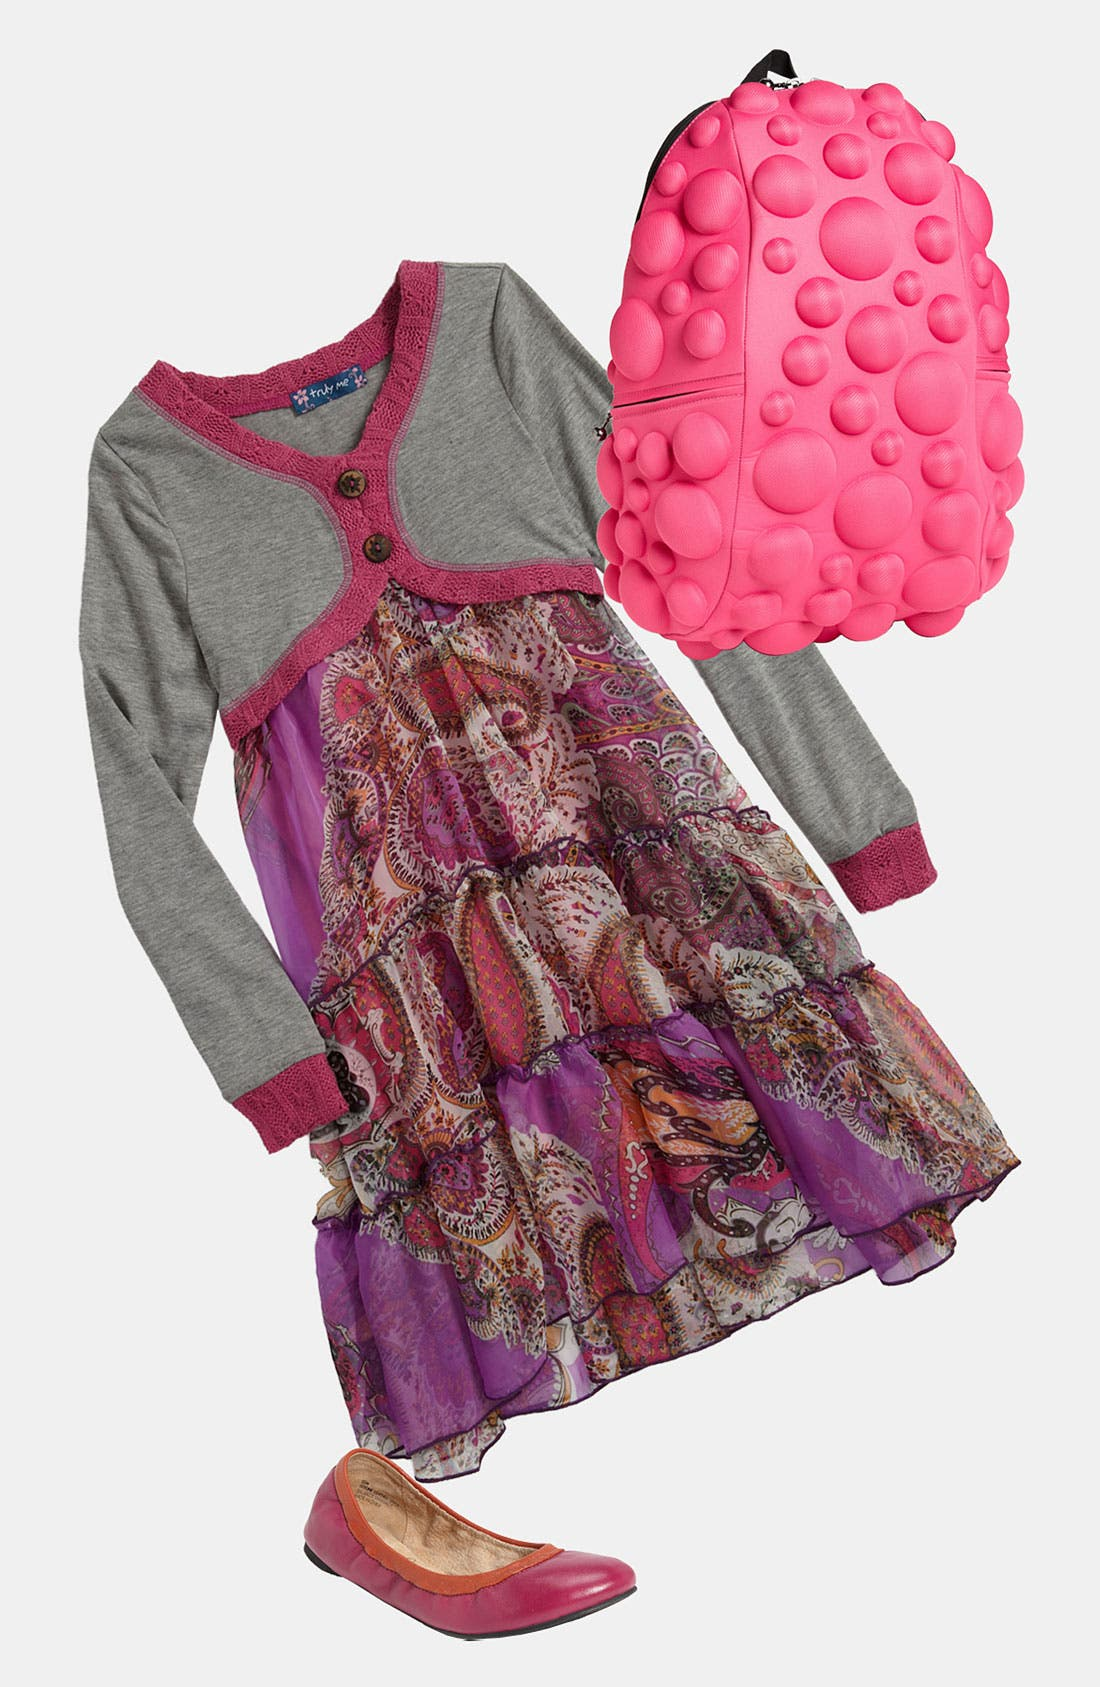 Alternate Image 1 Selected - Truly Me Dress & MadPax Backpack (Little Girls & Big Girls)